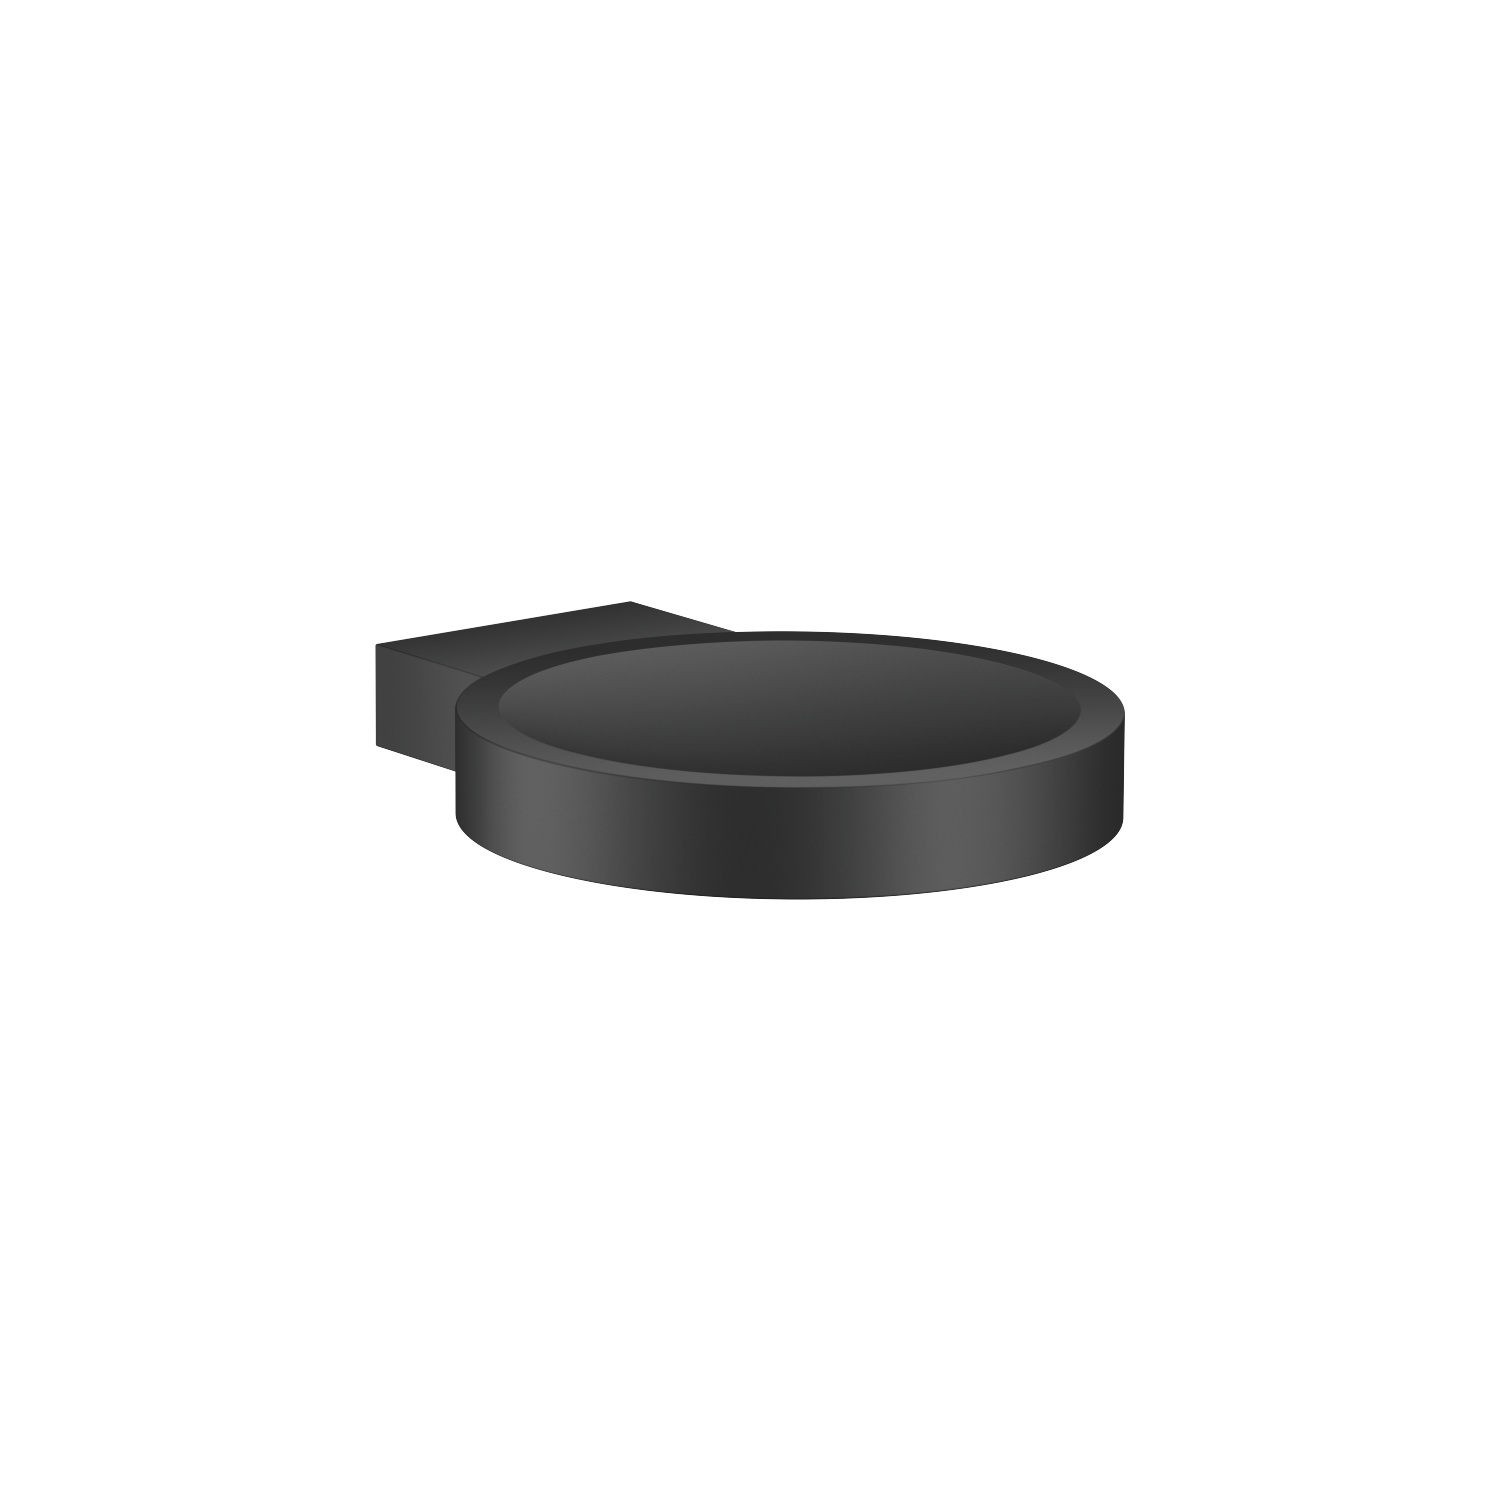 Soap dish wall model - matt black